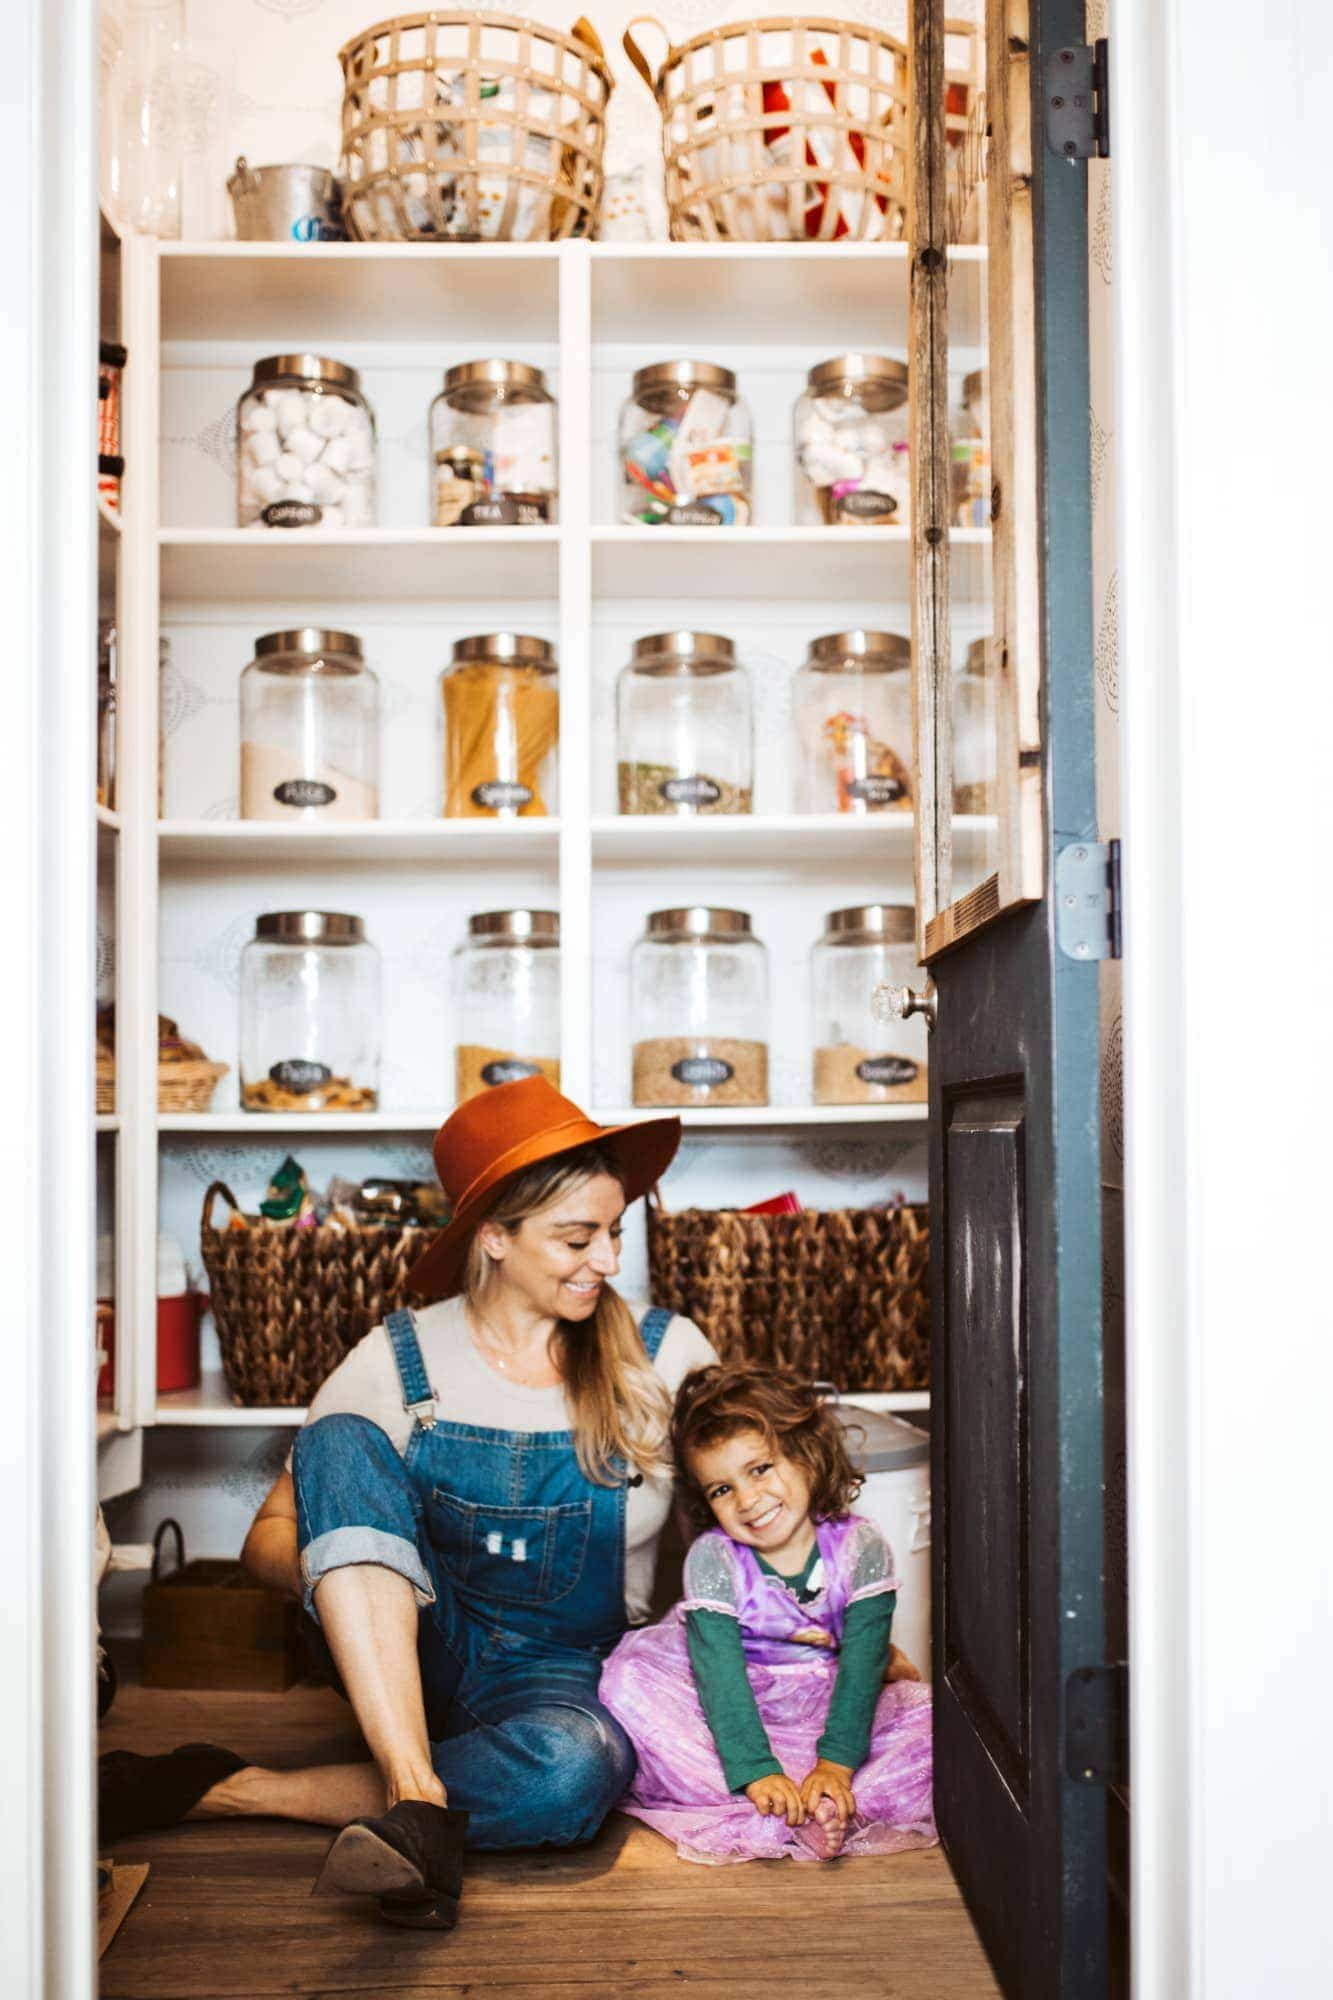 mom and child in pantry